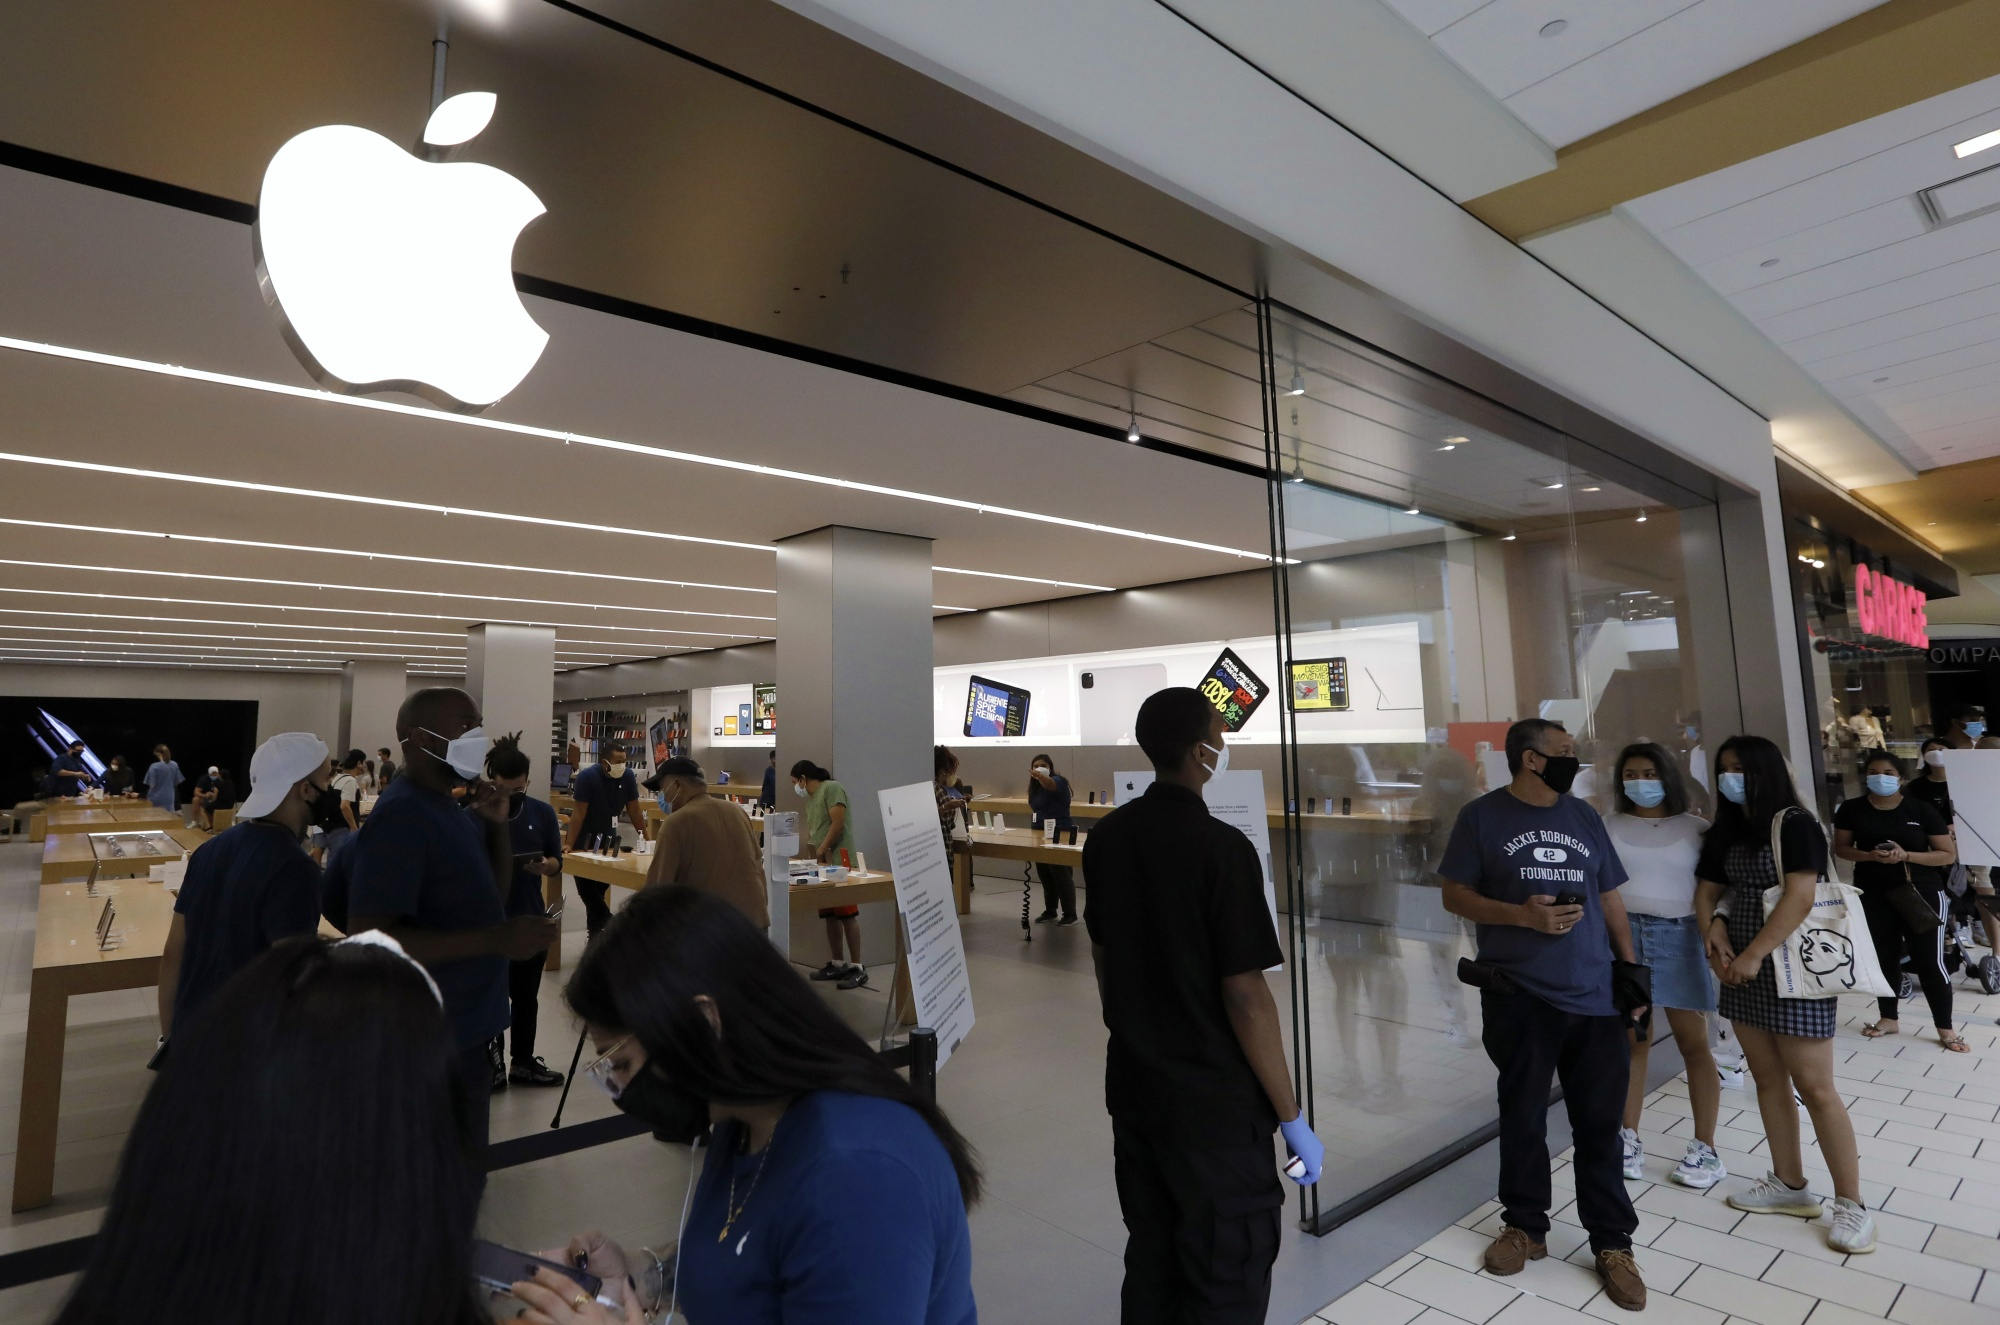 Shoppers stand in line to enter the Apple store at the Queens Center shopping mall inQueens,New York.